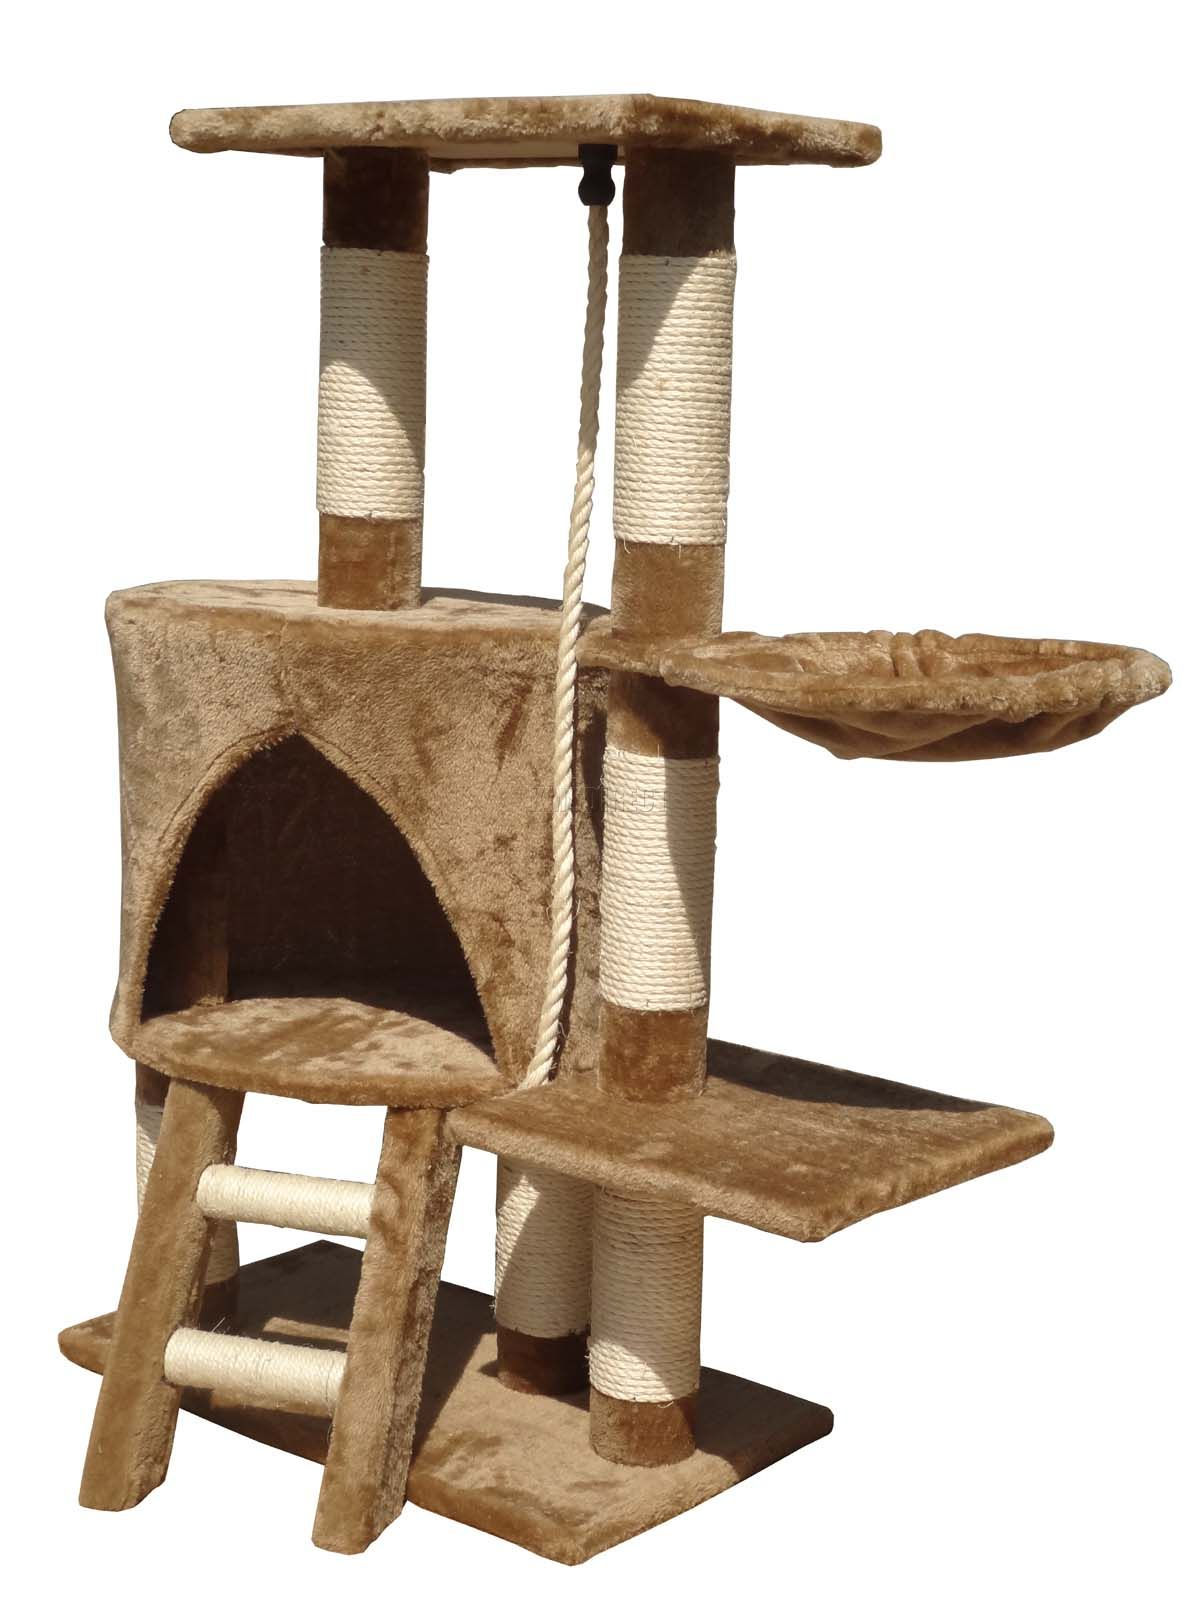 New Brand Domestic Delivery Cat Toys Swinging The Ball Furniture&Scratchers Cat Tree House